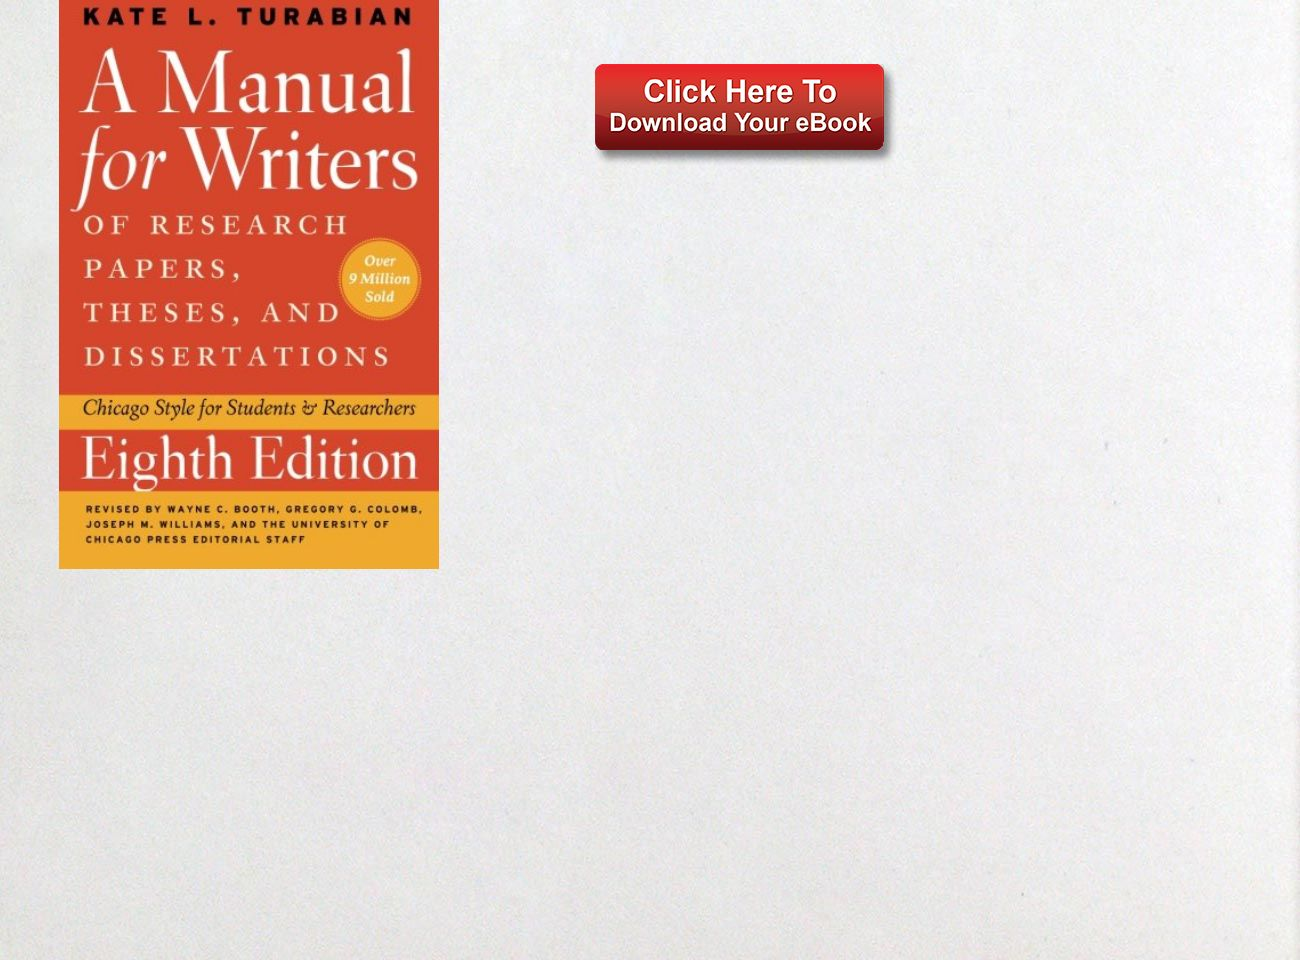 015 Source Research Paper Manual For Writers Of Papers Theses And Dissertations Fearsome A Ed 8 Full